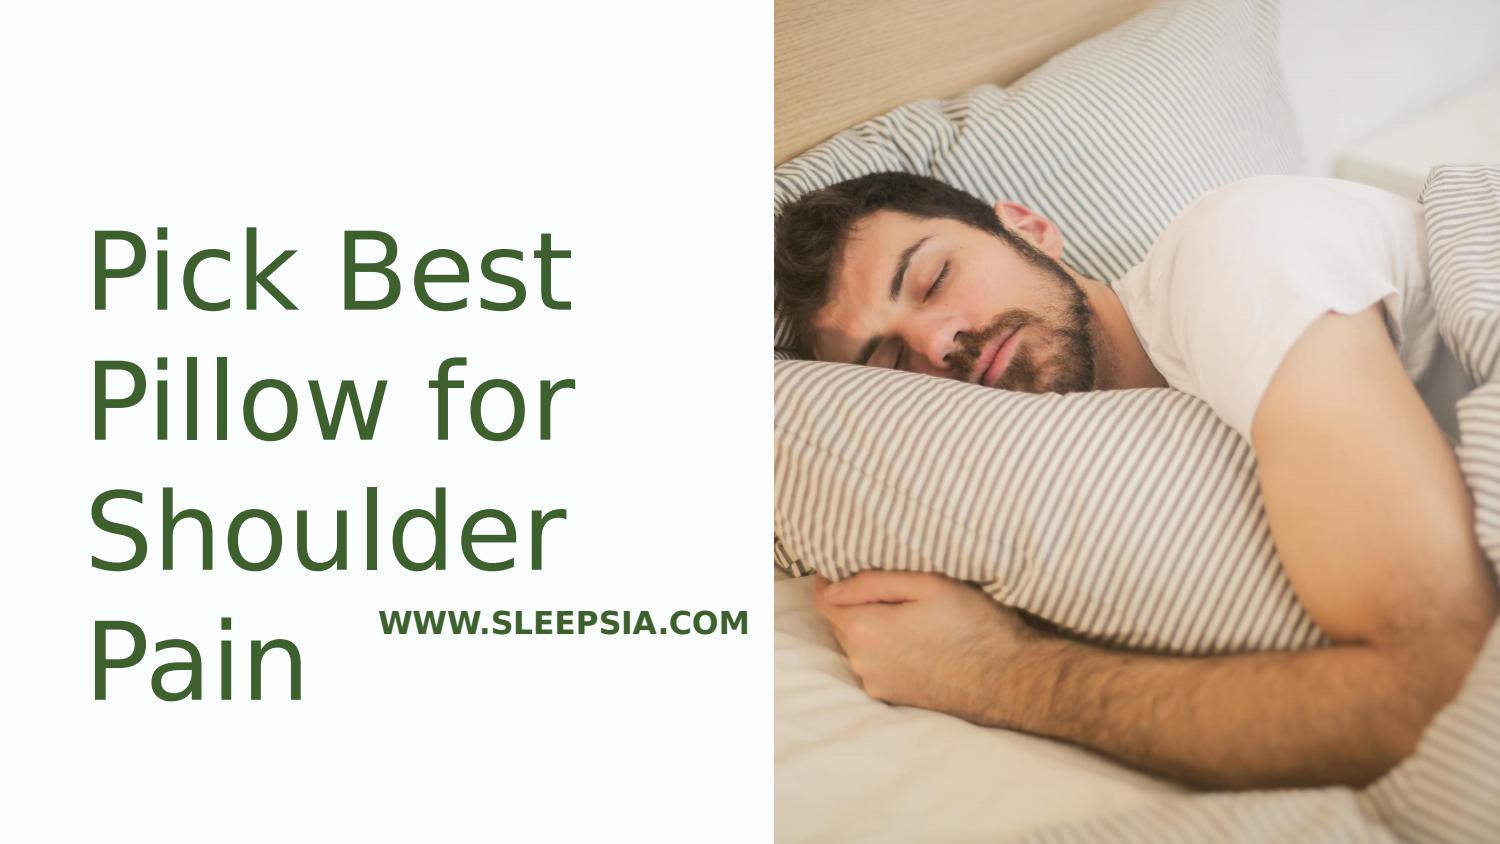 Pillow for Shoulder Pain by SleepSia